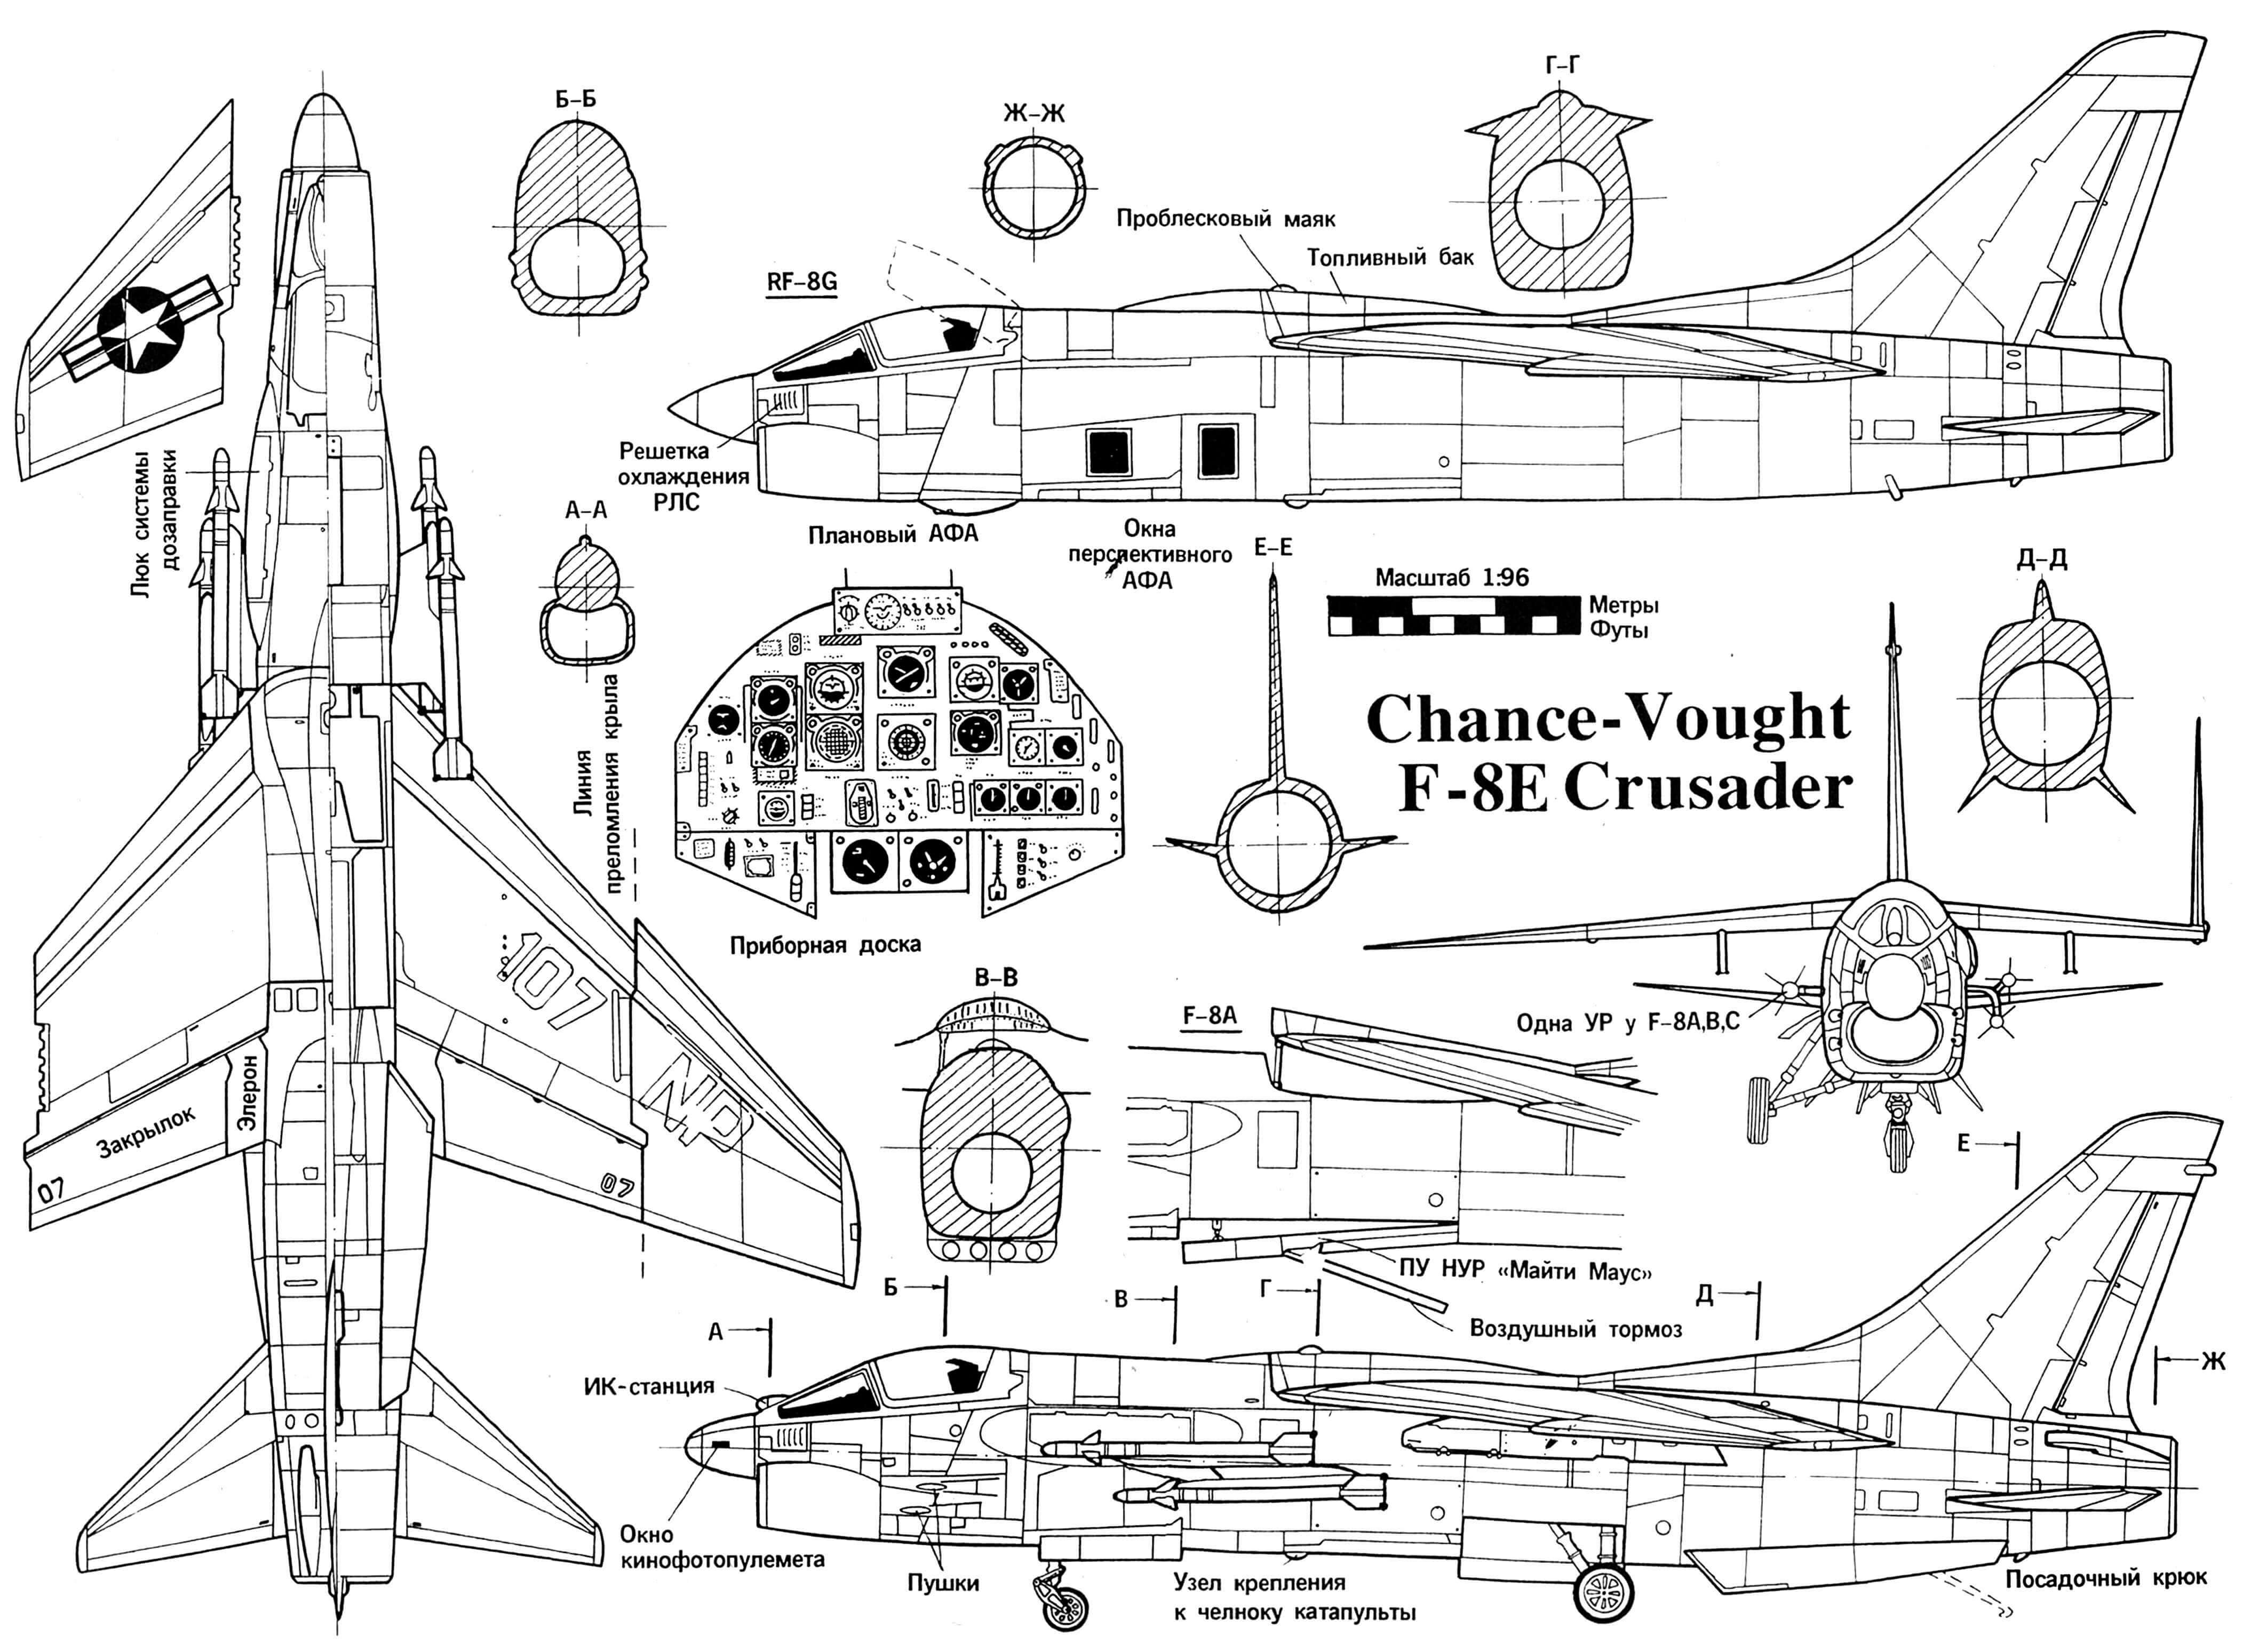 Chance-Vought F-8E Crusader